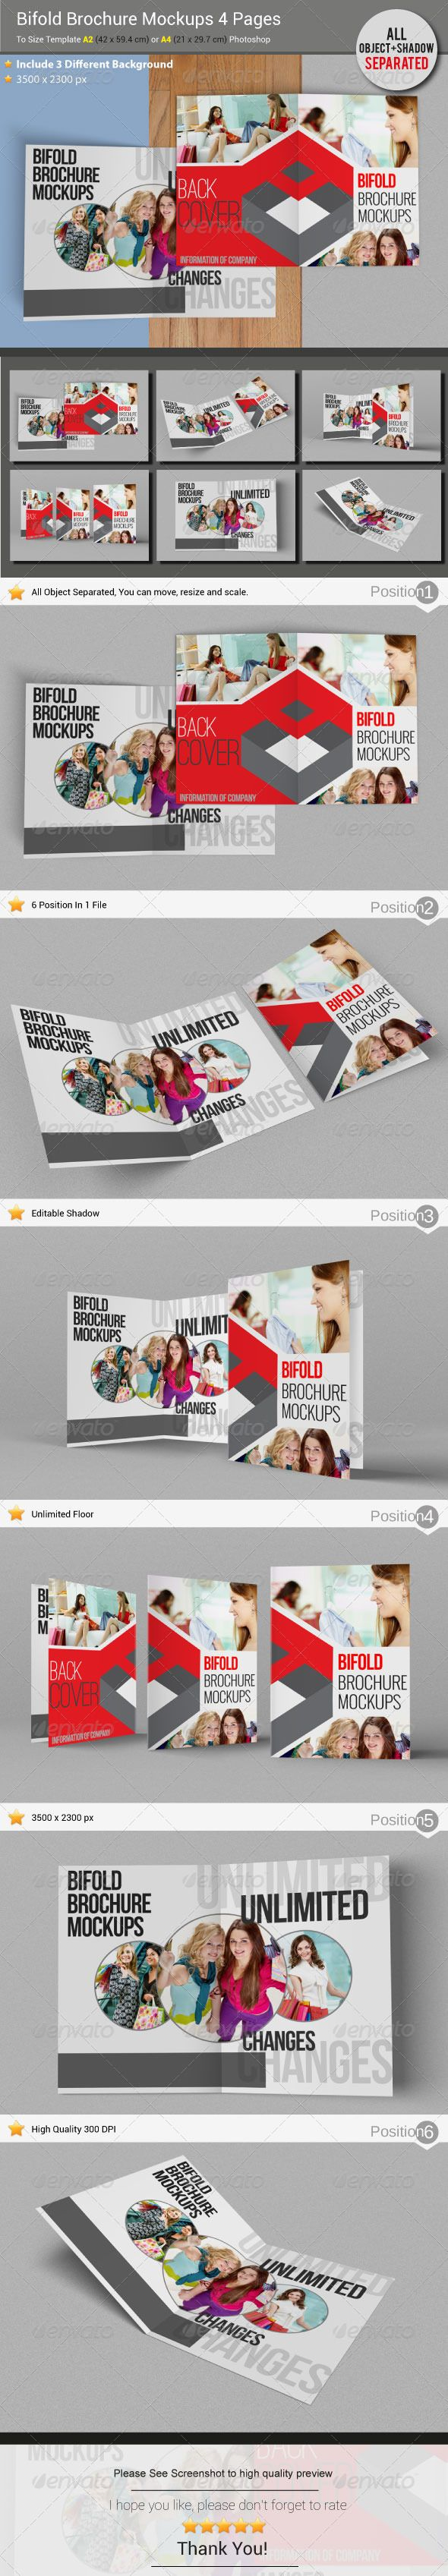 Rilski Stock Photos  Royalty Free Rilski Images   Depositphotos® further 47 best Graphics images on Pinterest   Font logo  Fonts and Mockup as well Rilski Stock Photos  Royalty Free Rilski Images   Depositphotos® moreover Curve in  Vector    The Proportion Of  In   and Vector for in addition Jeffrey Kellym  jeffreykellym  on Pinterest moreover Jeffrey Kellym  jeffreykellym  on Pinterest further Rilski Stock Photos  Royalty Free Rilski Images   Depositphotos® further Gold cross background   Stock Photo   Colourbox likewise 47 best Graphics images on Pinterest   Font logo  Fonts and Mockup also Jeffrey Kellym  jeffreykellym  on Pinterest additionally Gold cross background   Stock Photo   Colourbox. on 2950x2860